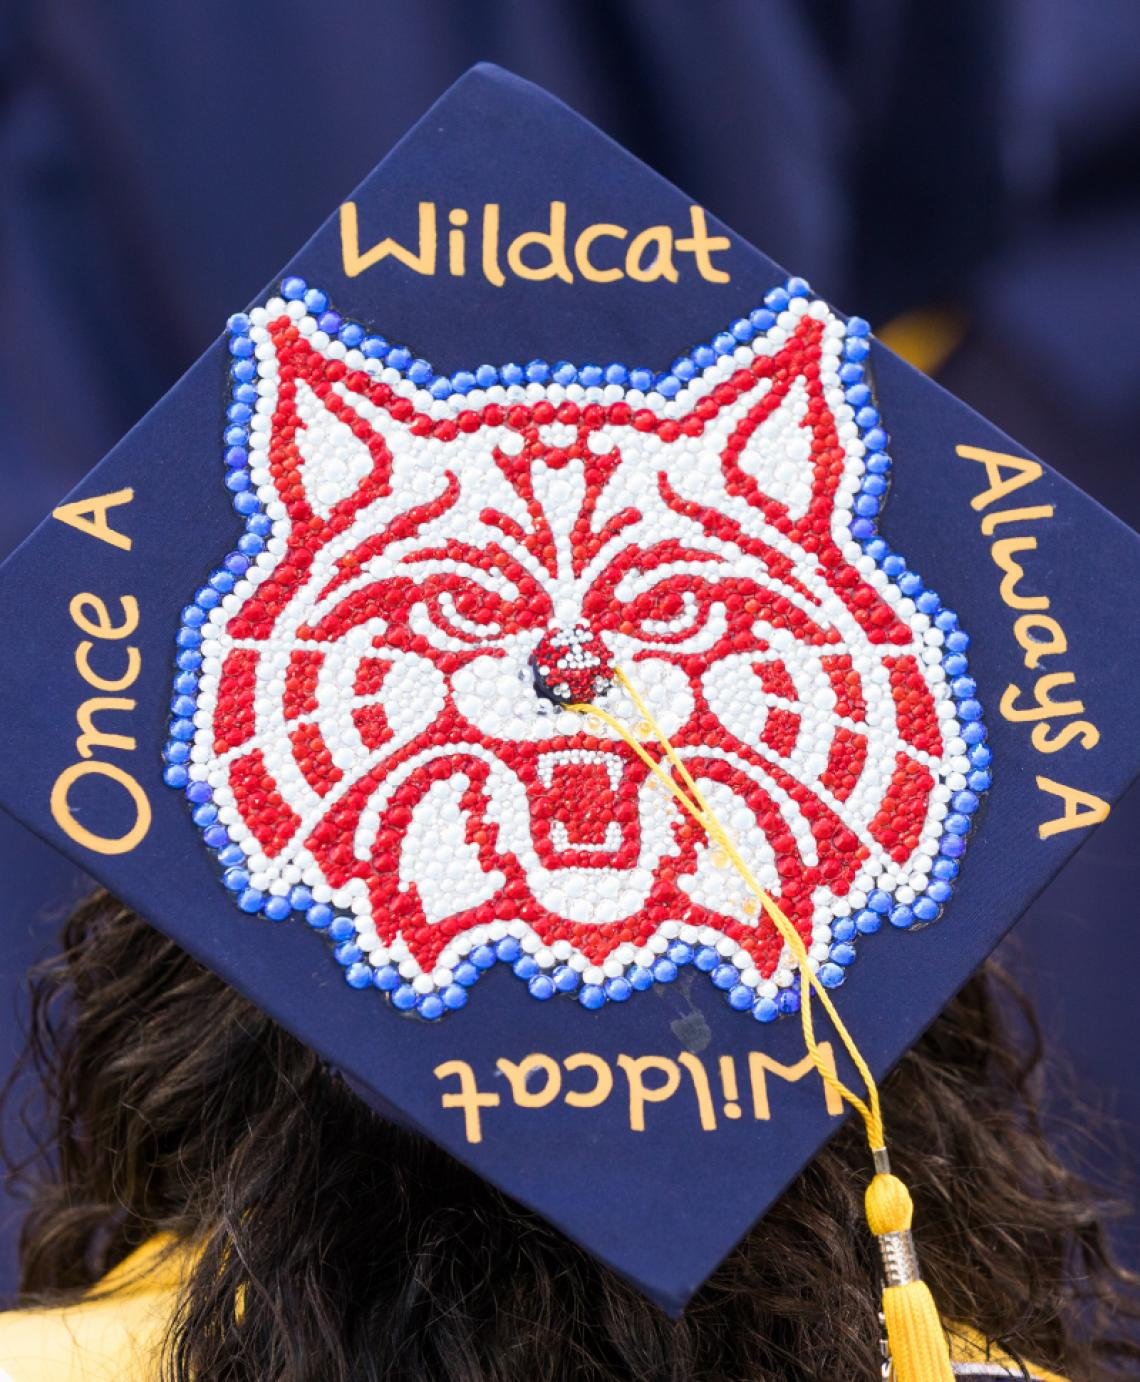 Top of a graduate's cap with a wildcat outline and words around it reading once a Wildcat, always a Wildcat